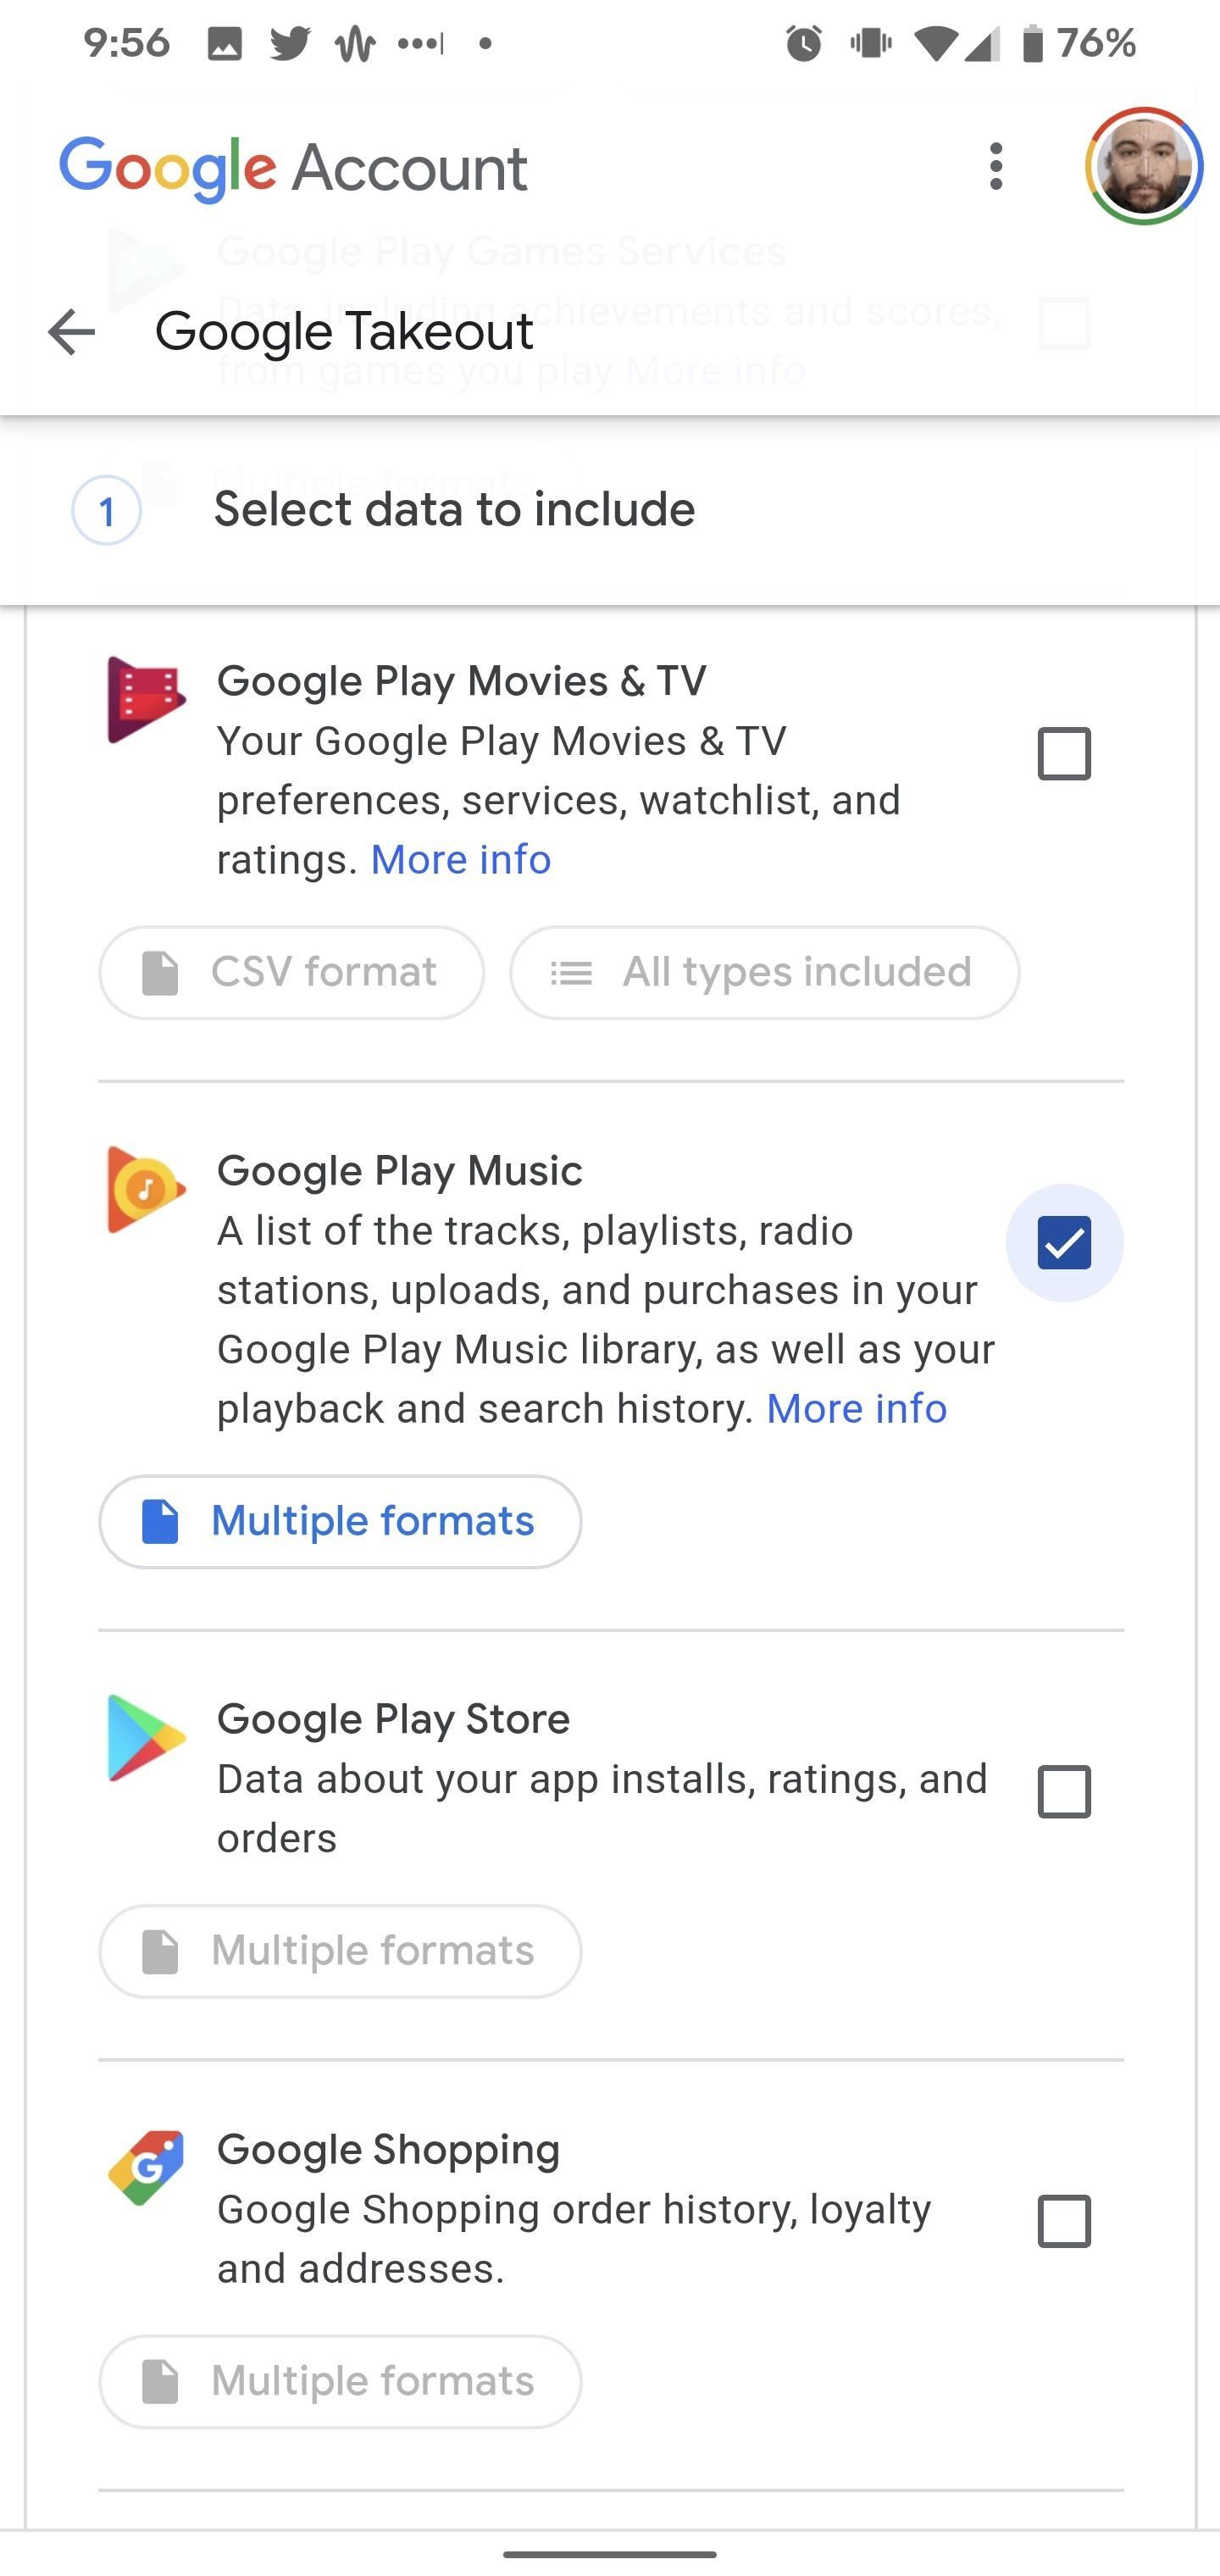 How to Download All the Songs from Your Google Play Music Library Before Google Deletes Them on Feb. 24